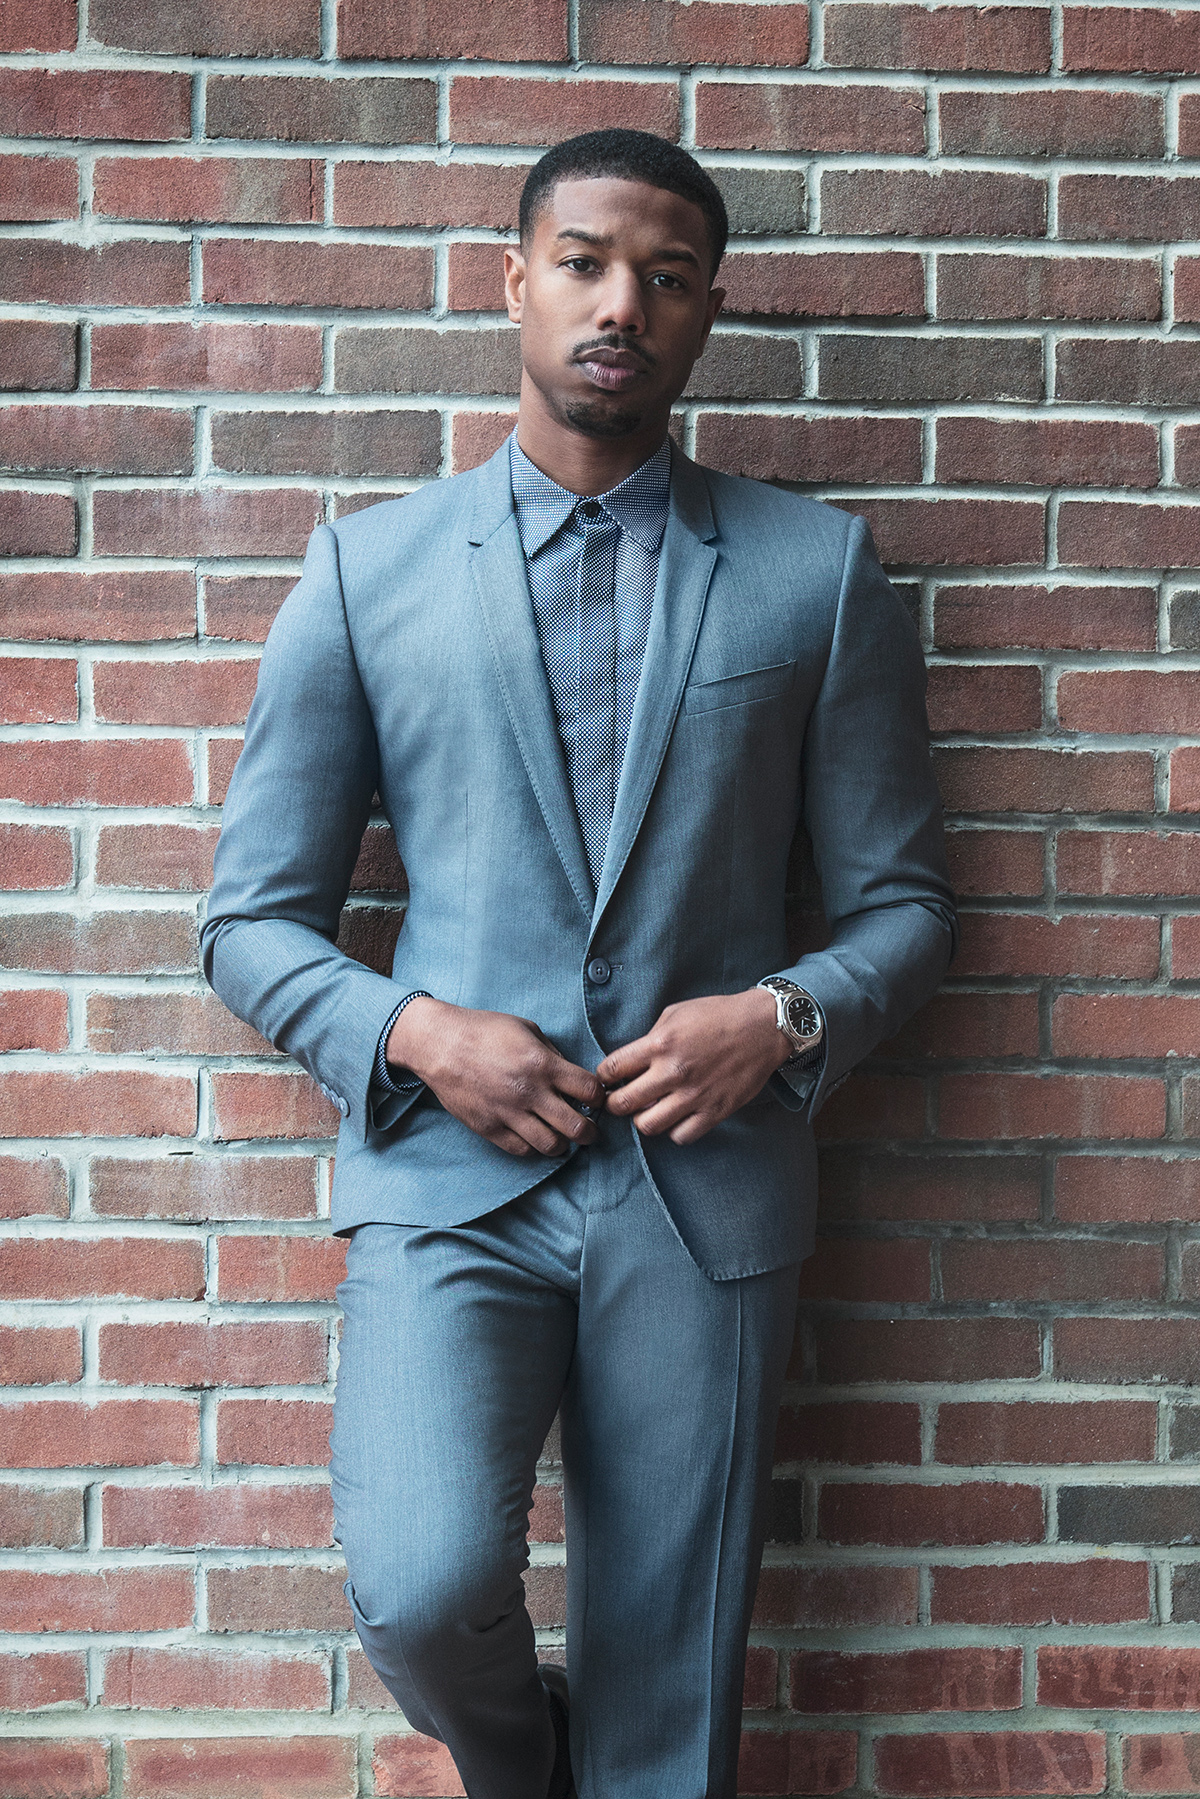 michael-b-jordan-james-bort-piaget-2